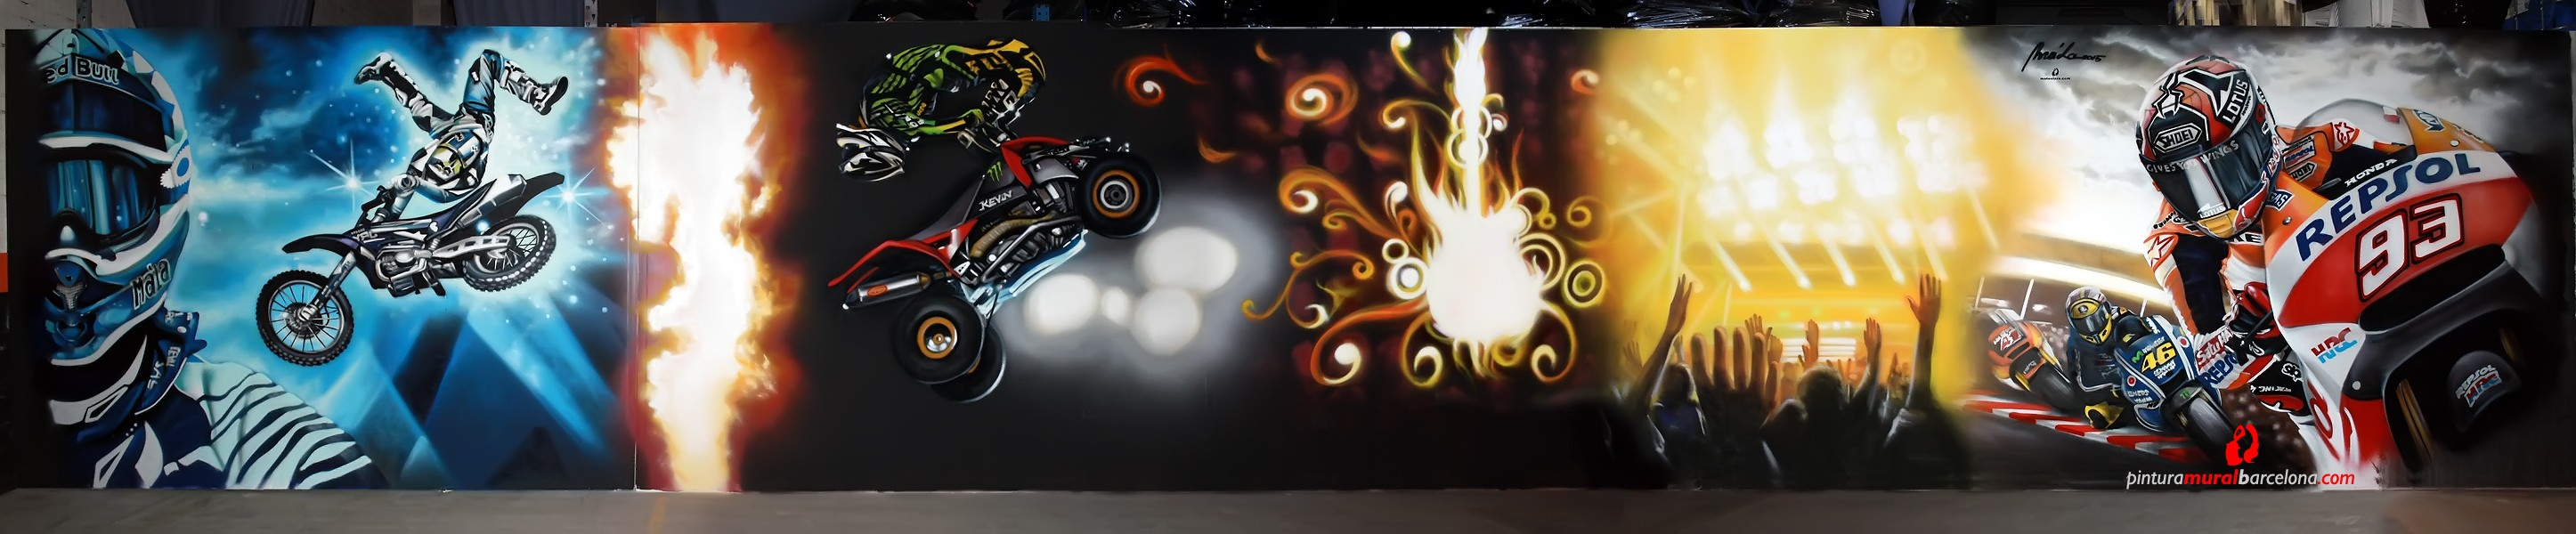 MURAL GRAFFITI MOTO QUAD FREESTYLE